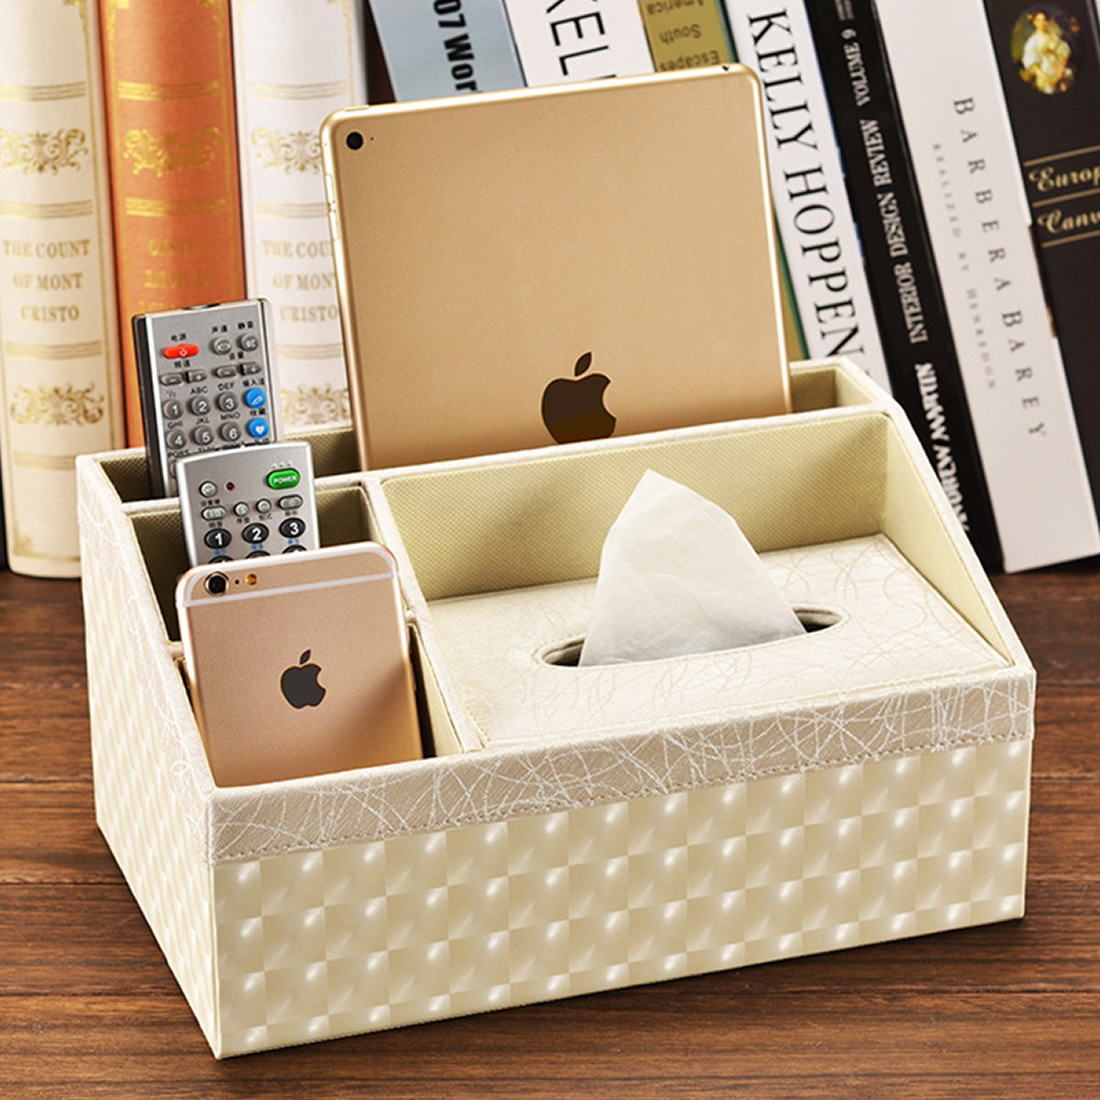 Multifunctional Storage Boxs with Tissue Box Remote Control Phone Holder Home Office Car Organizer Cosmetic Make